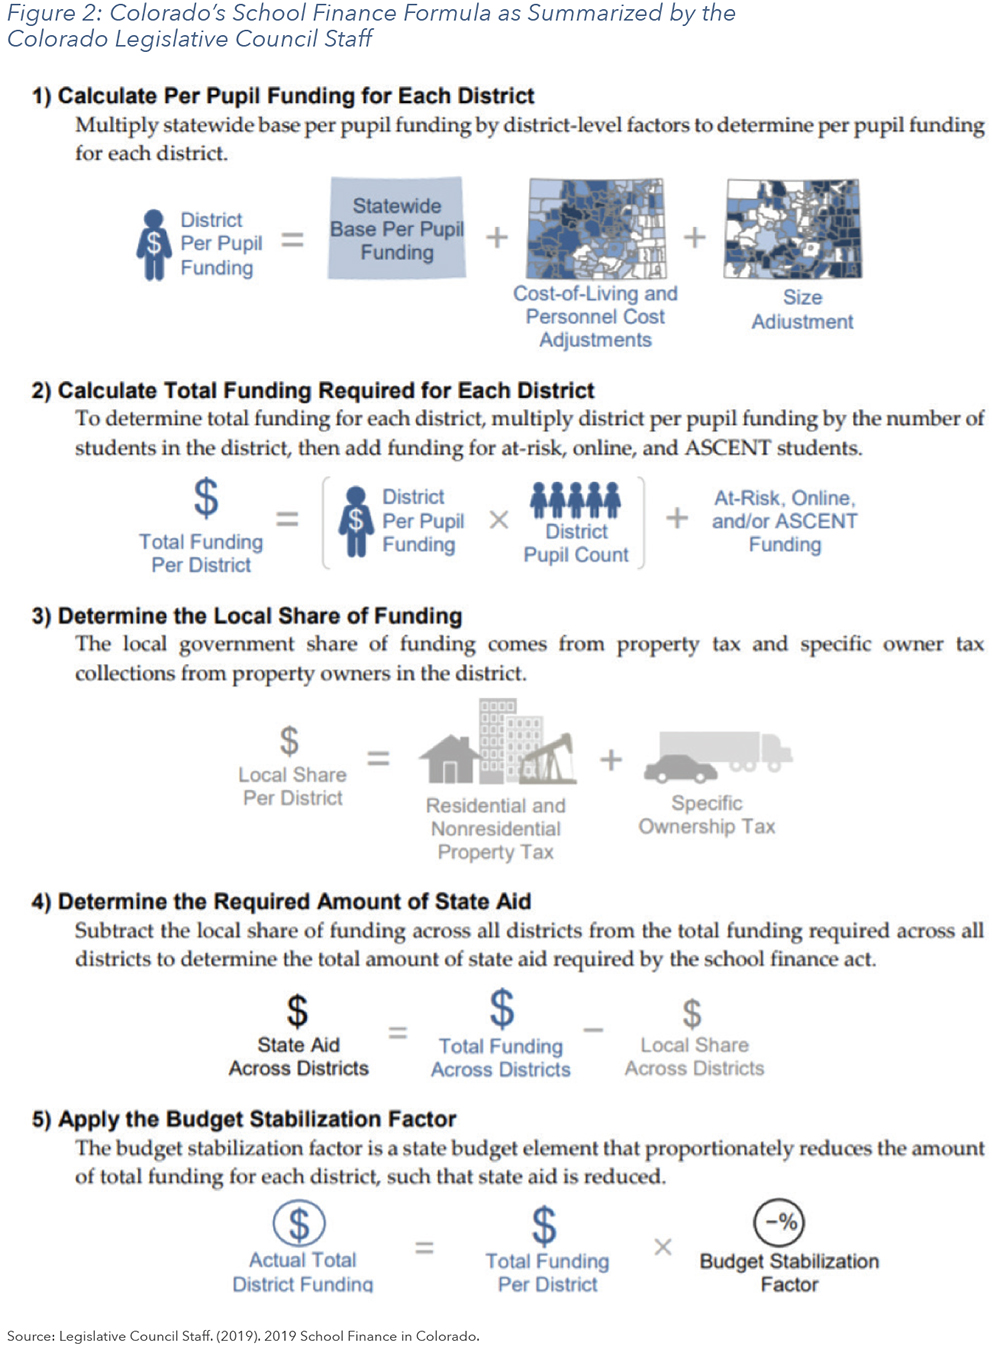 Figure 2: Colorado's School Finance Formula as Summarized by the Colorado Legislative Council Staff